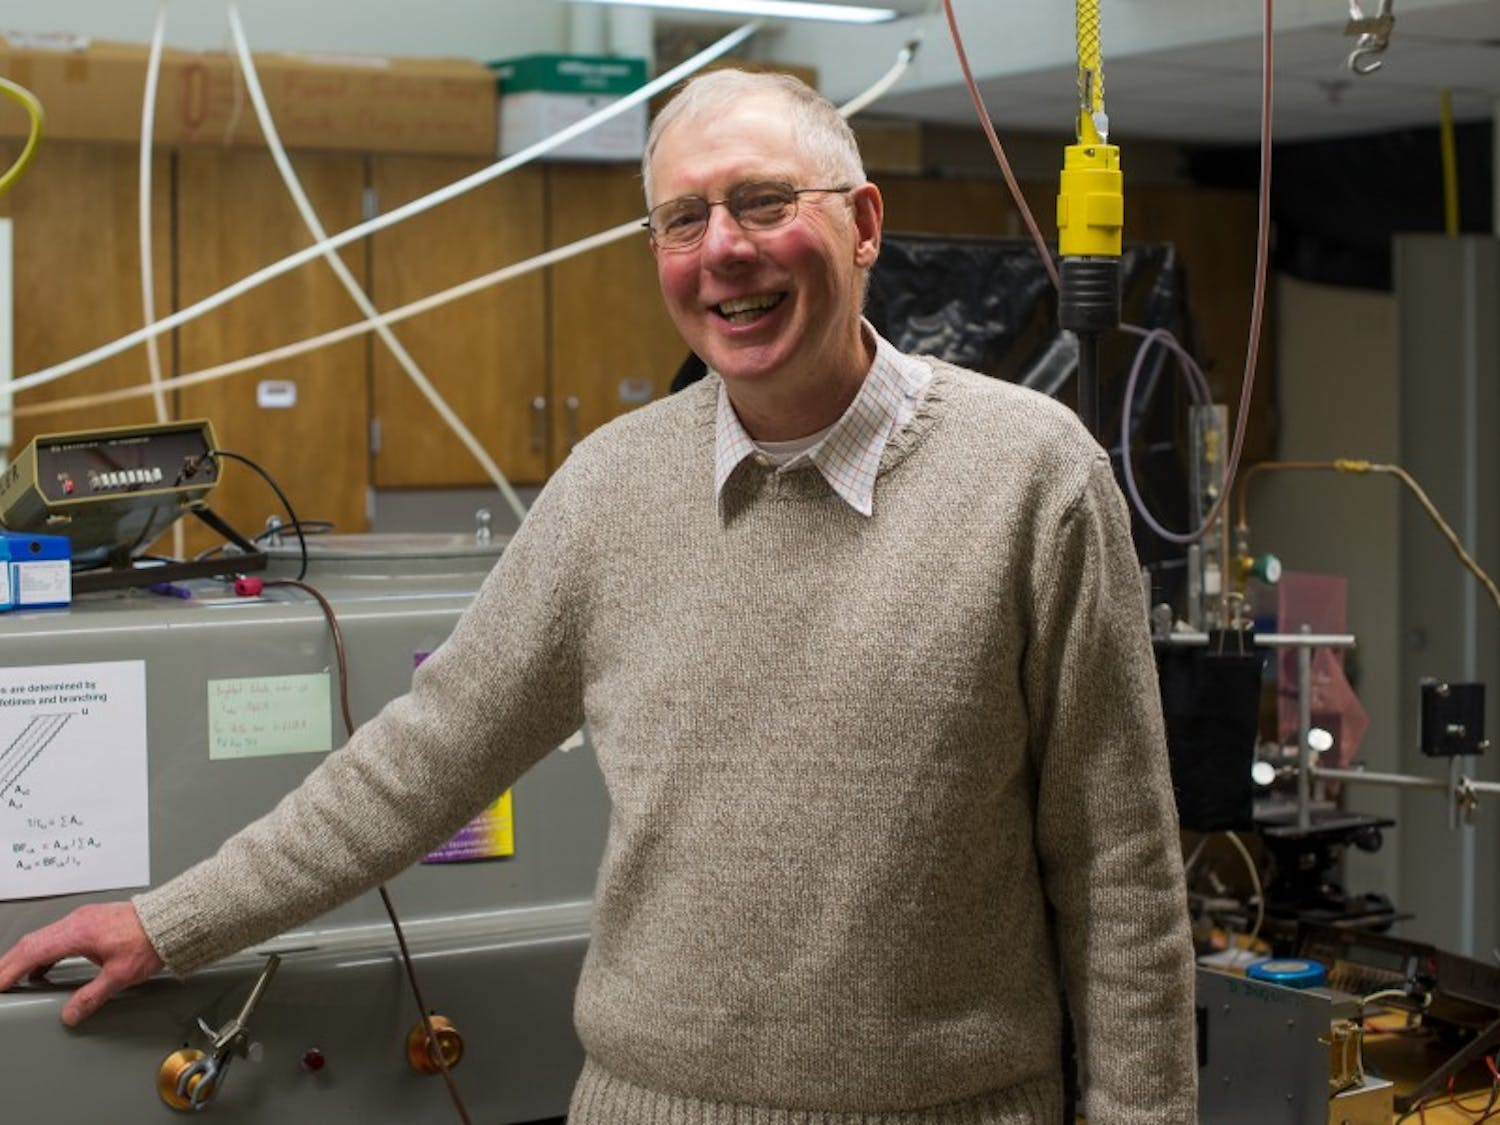 In an interview with the Daily Cardinal, Professor James Lawler explained the uses of equipment housed in his lab.